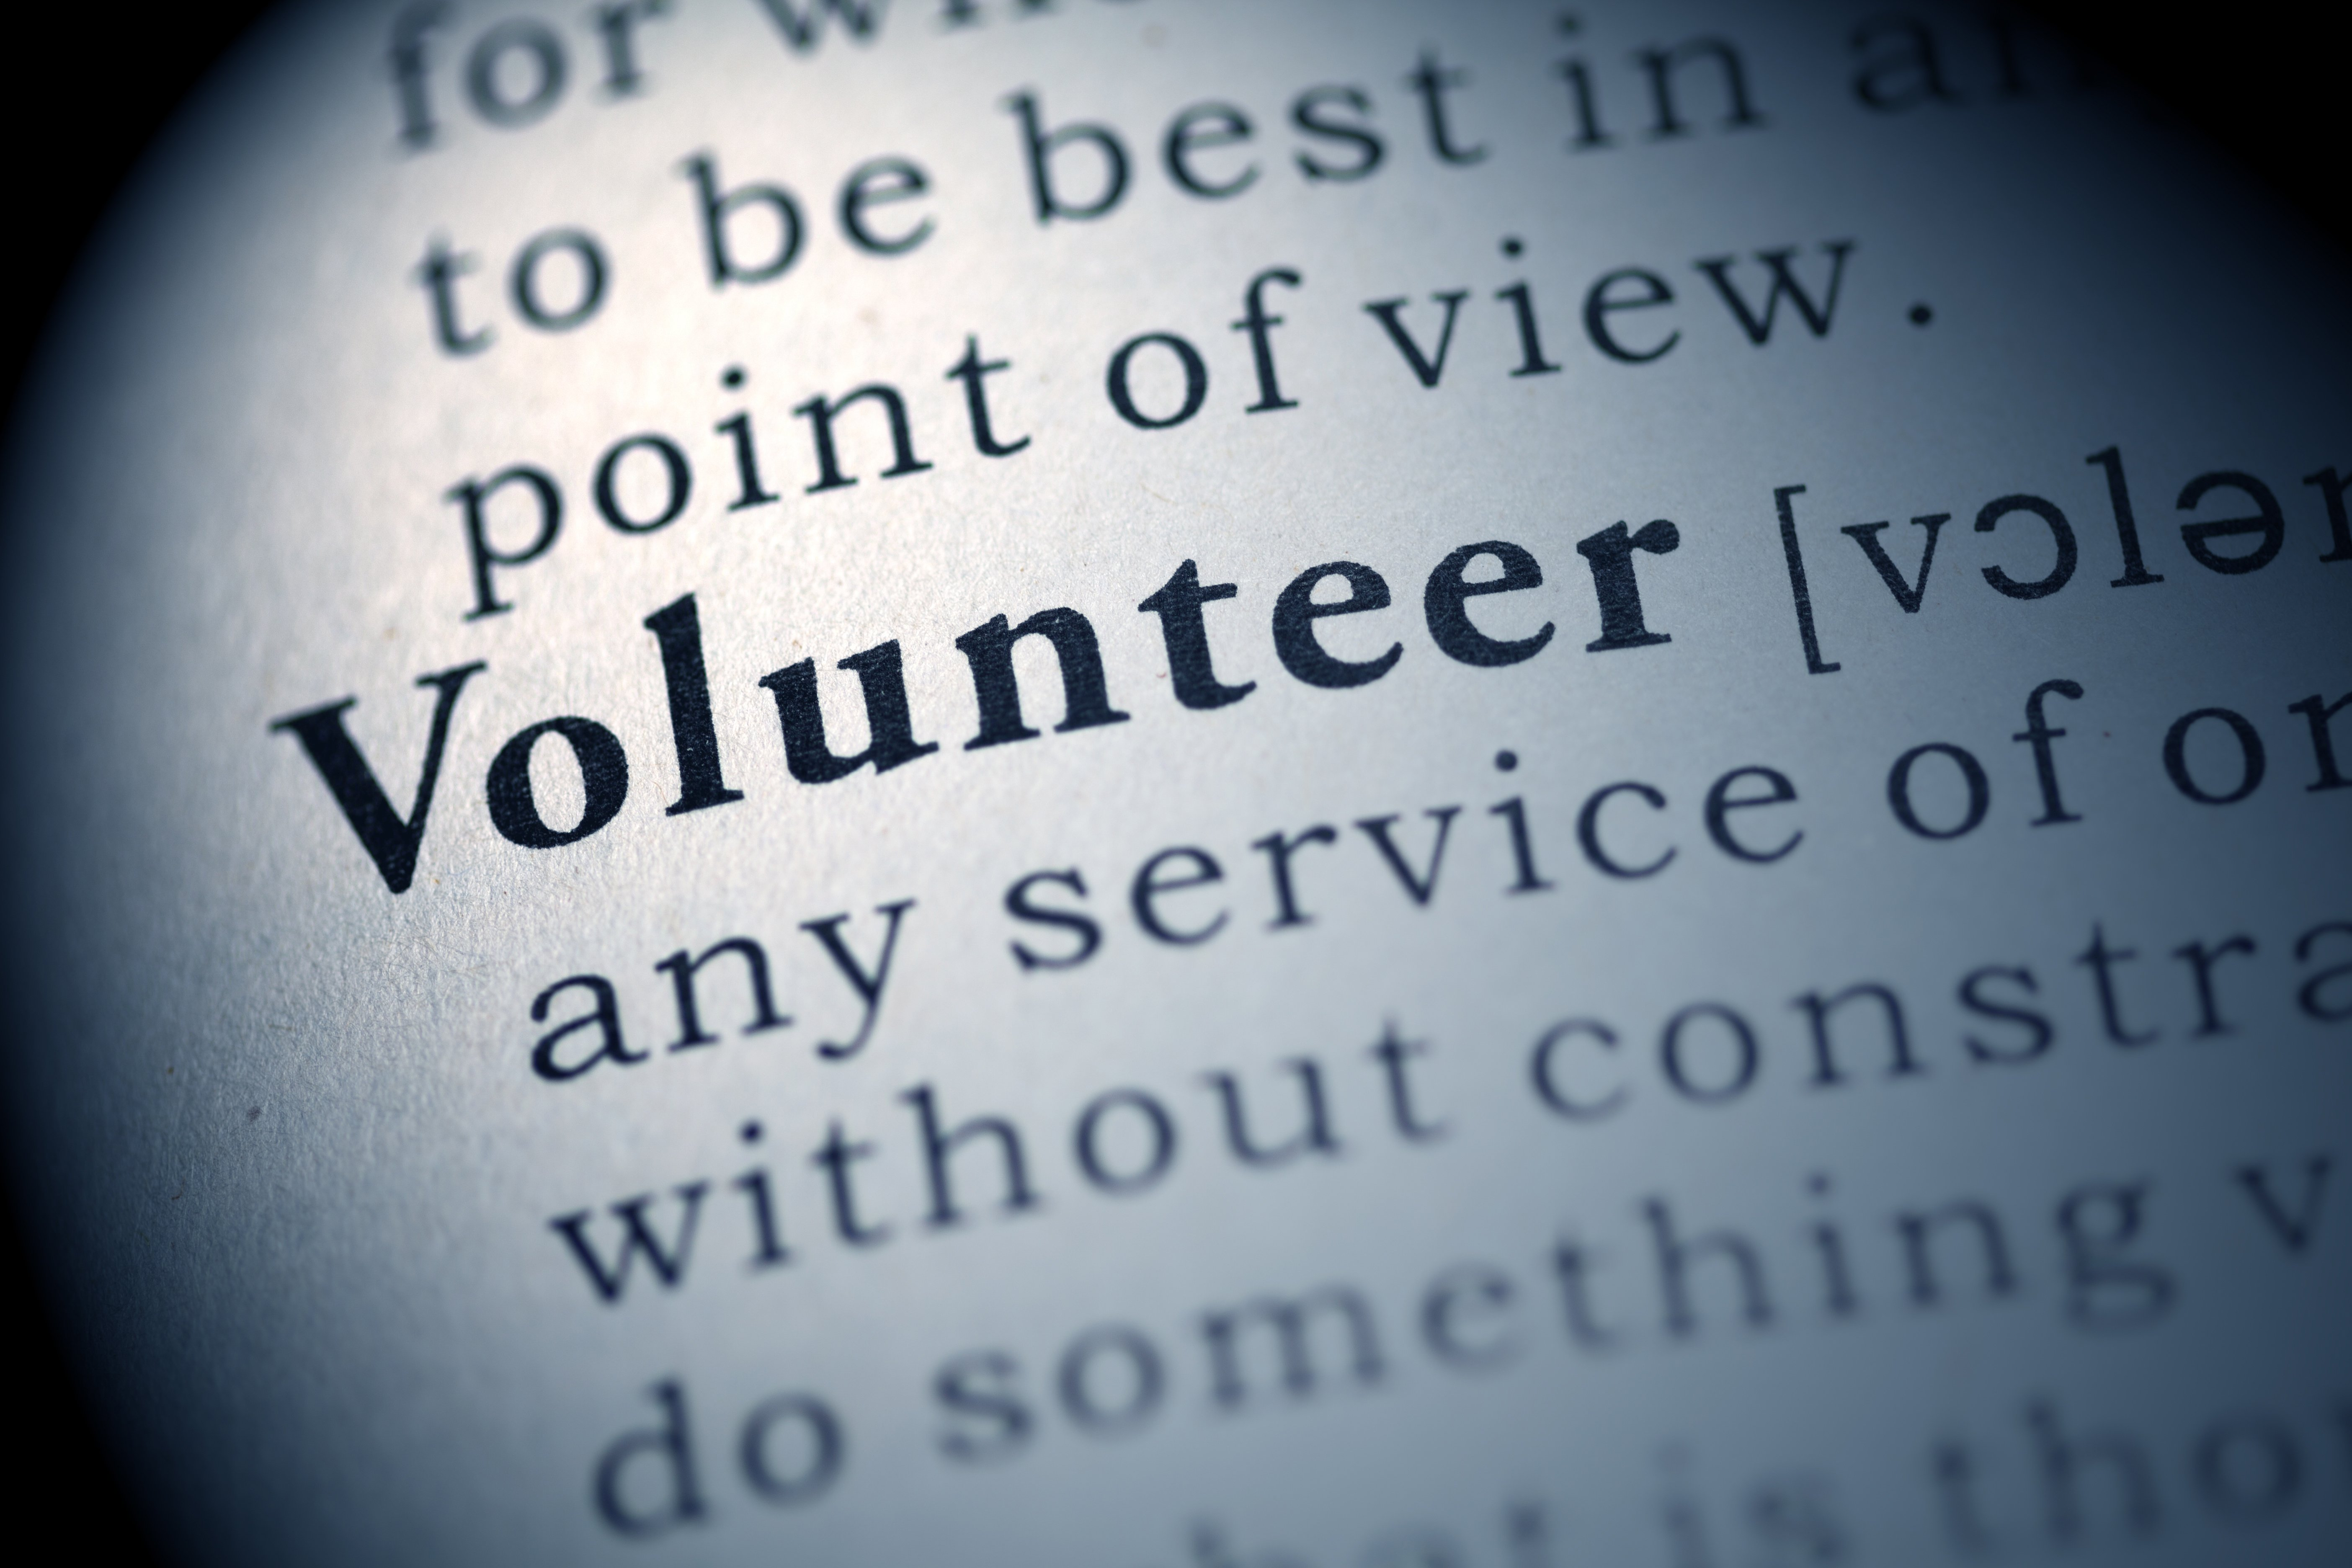 Volunteering is both a great way to stay active as well as give back to your community!